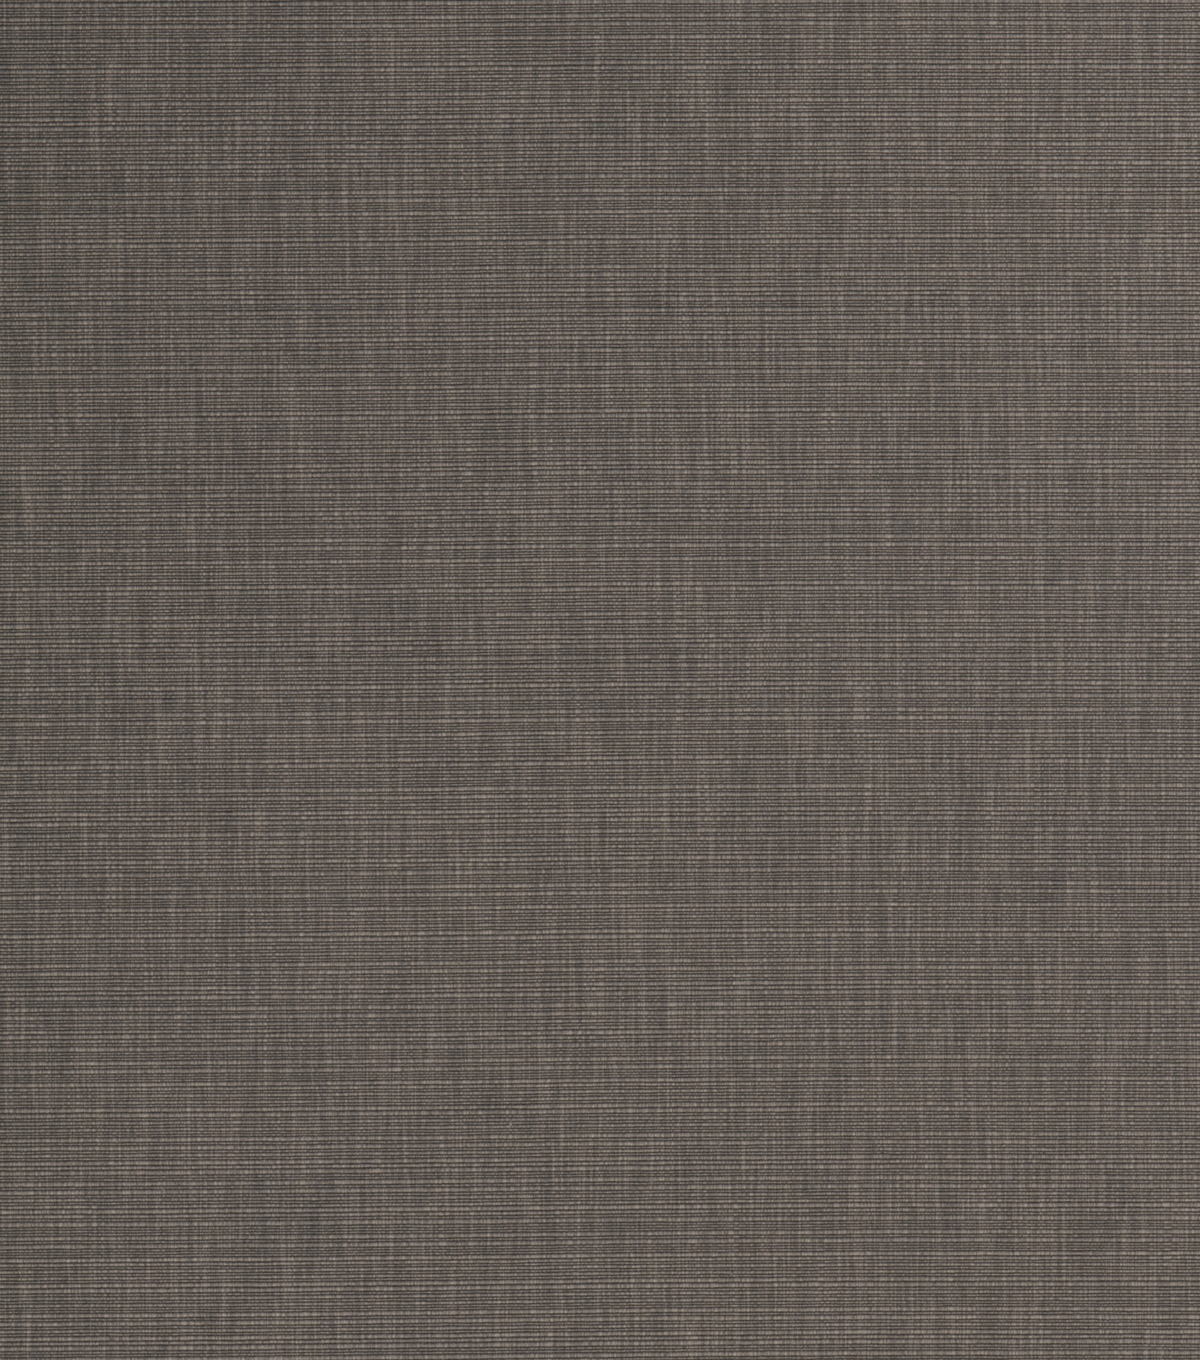 Home Decor 8x8 Fabric Swatch-Eaton Square Archie Pewter